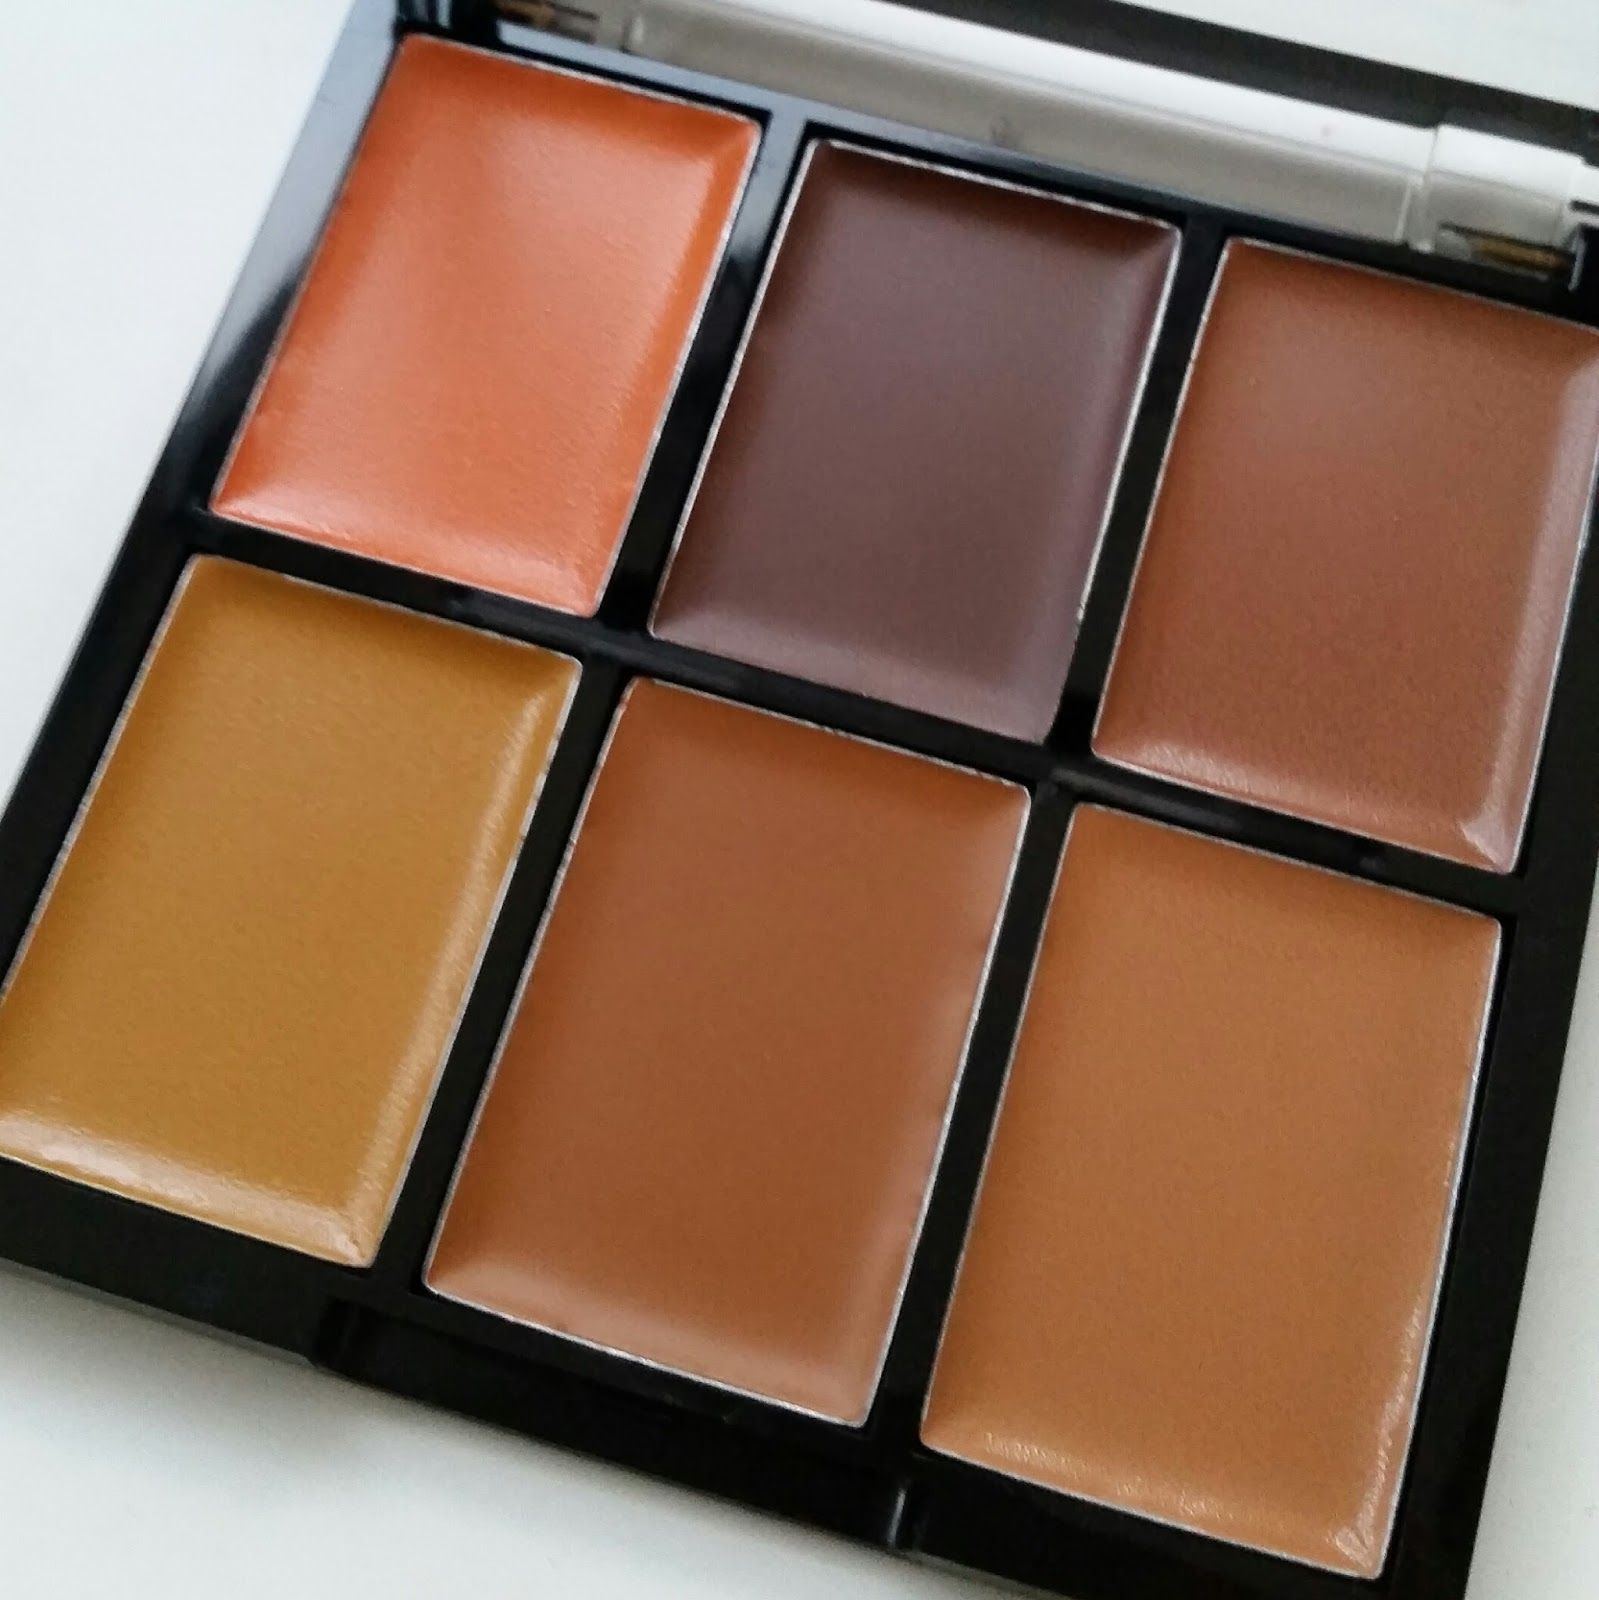 FREEDOM MAKEUP LONDON PRO CONCEAL AND CORRECT PALETTE